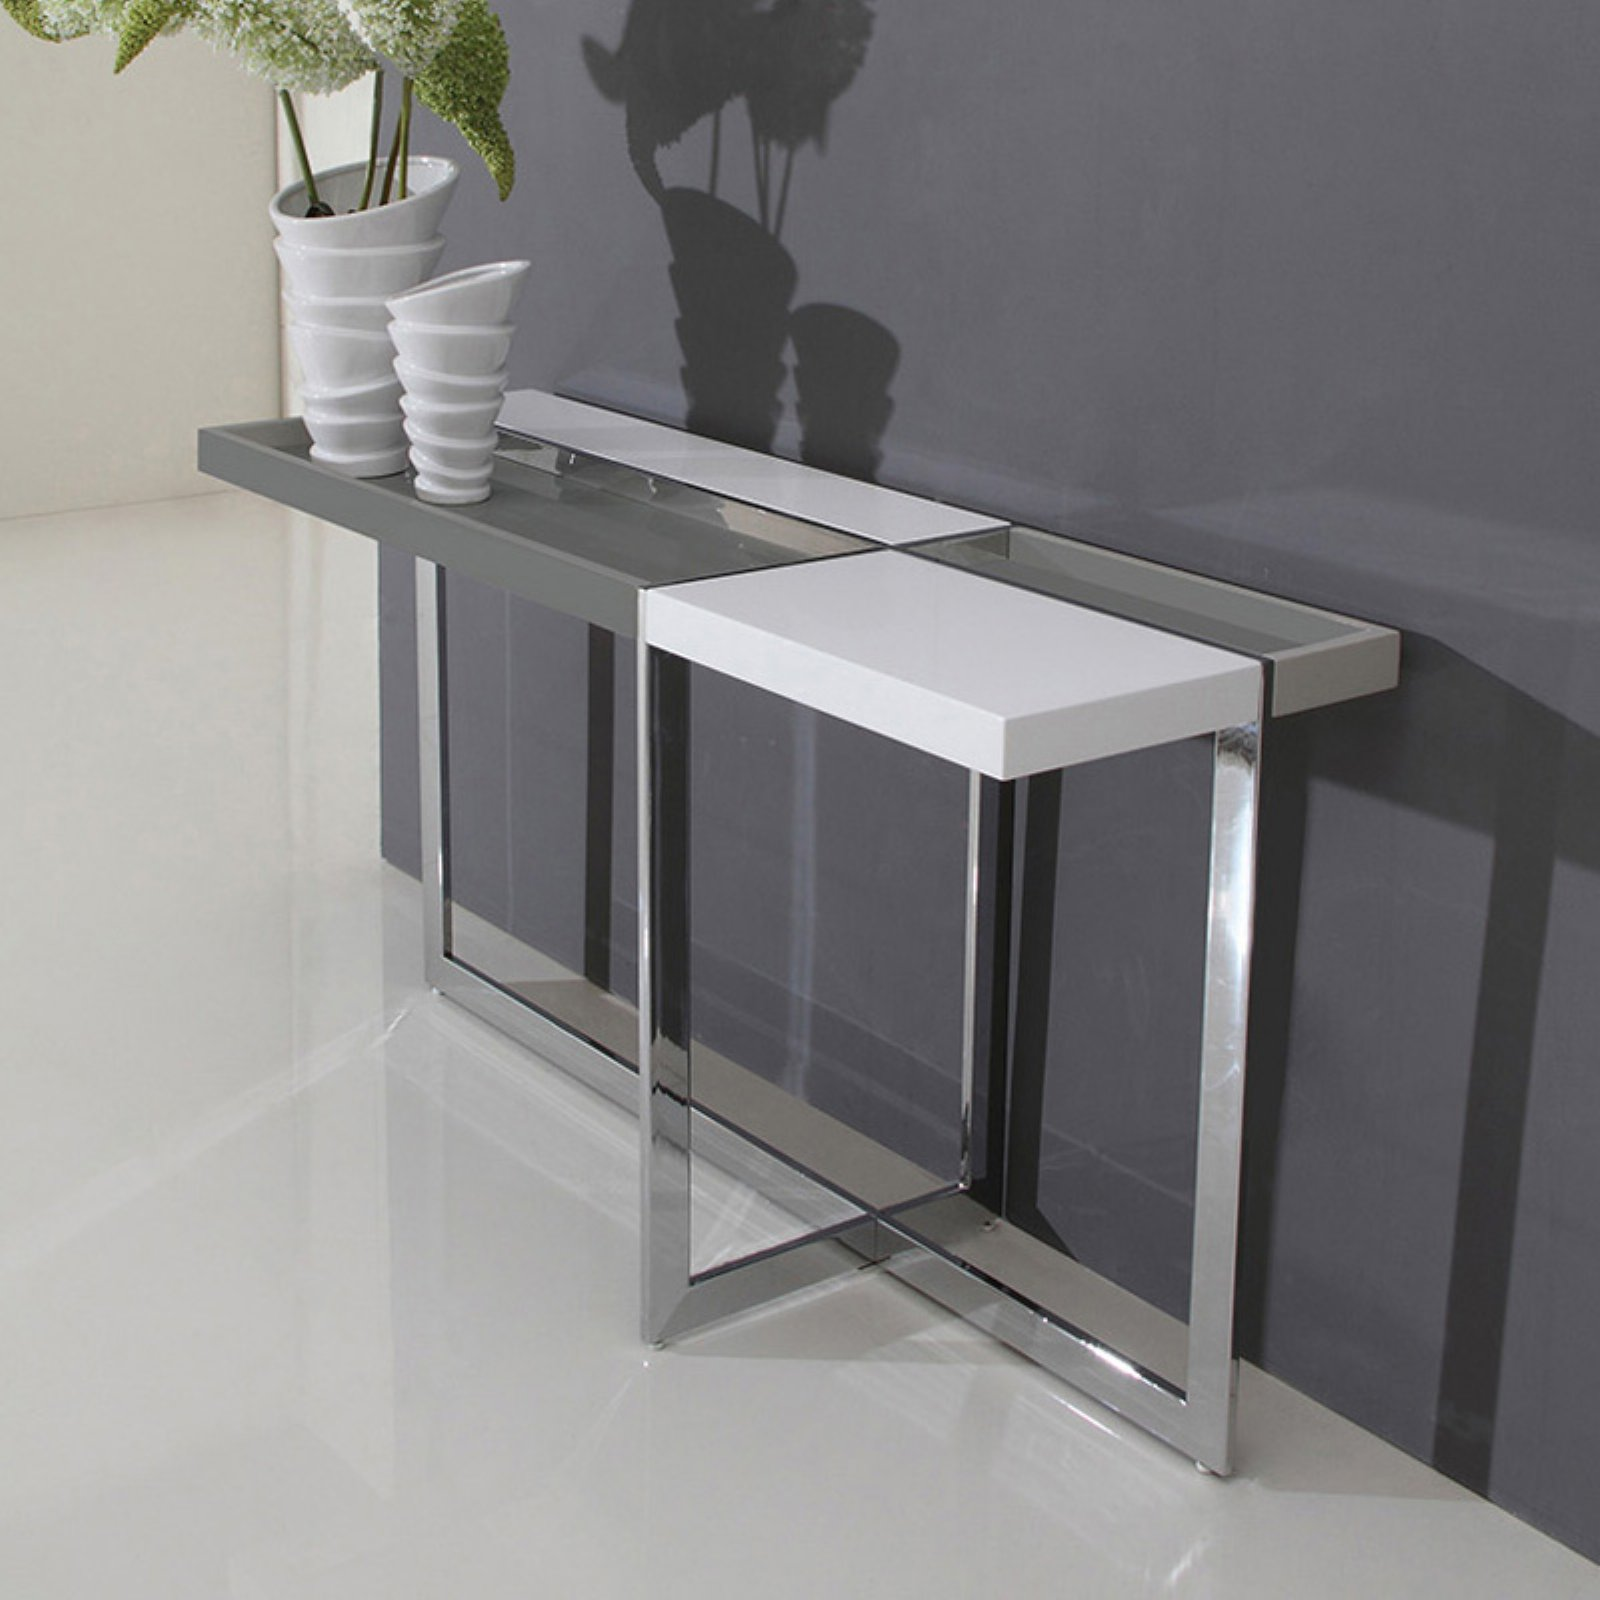 Merveilleux Talenti Casa Domino Collection High Gloss White Lacquer Console Table